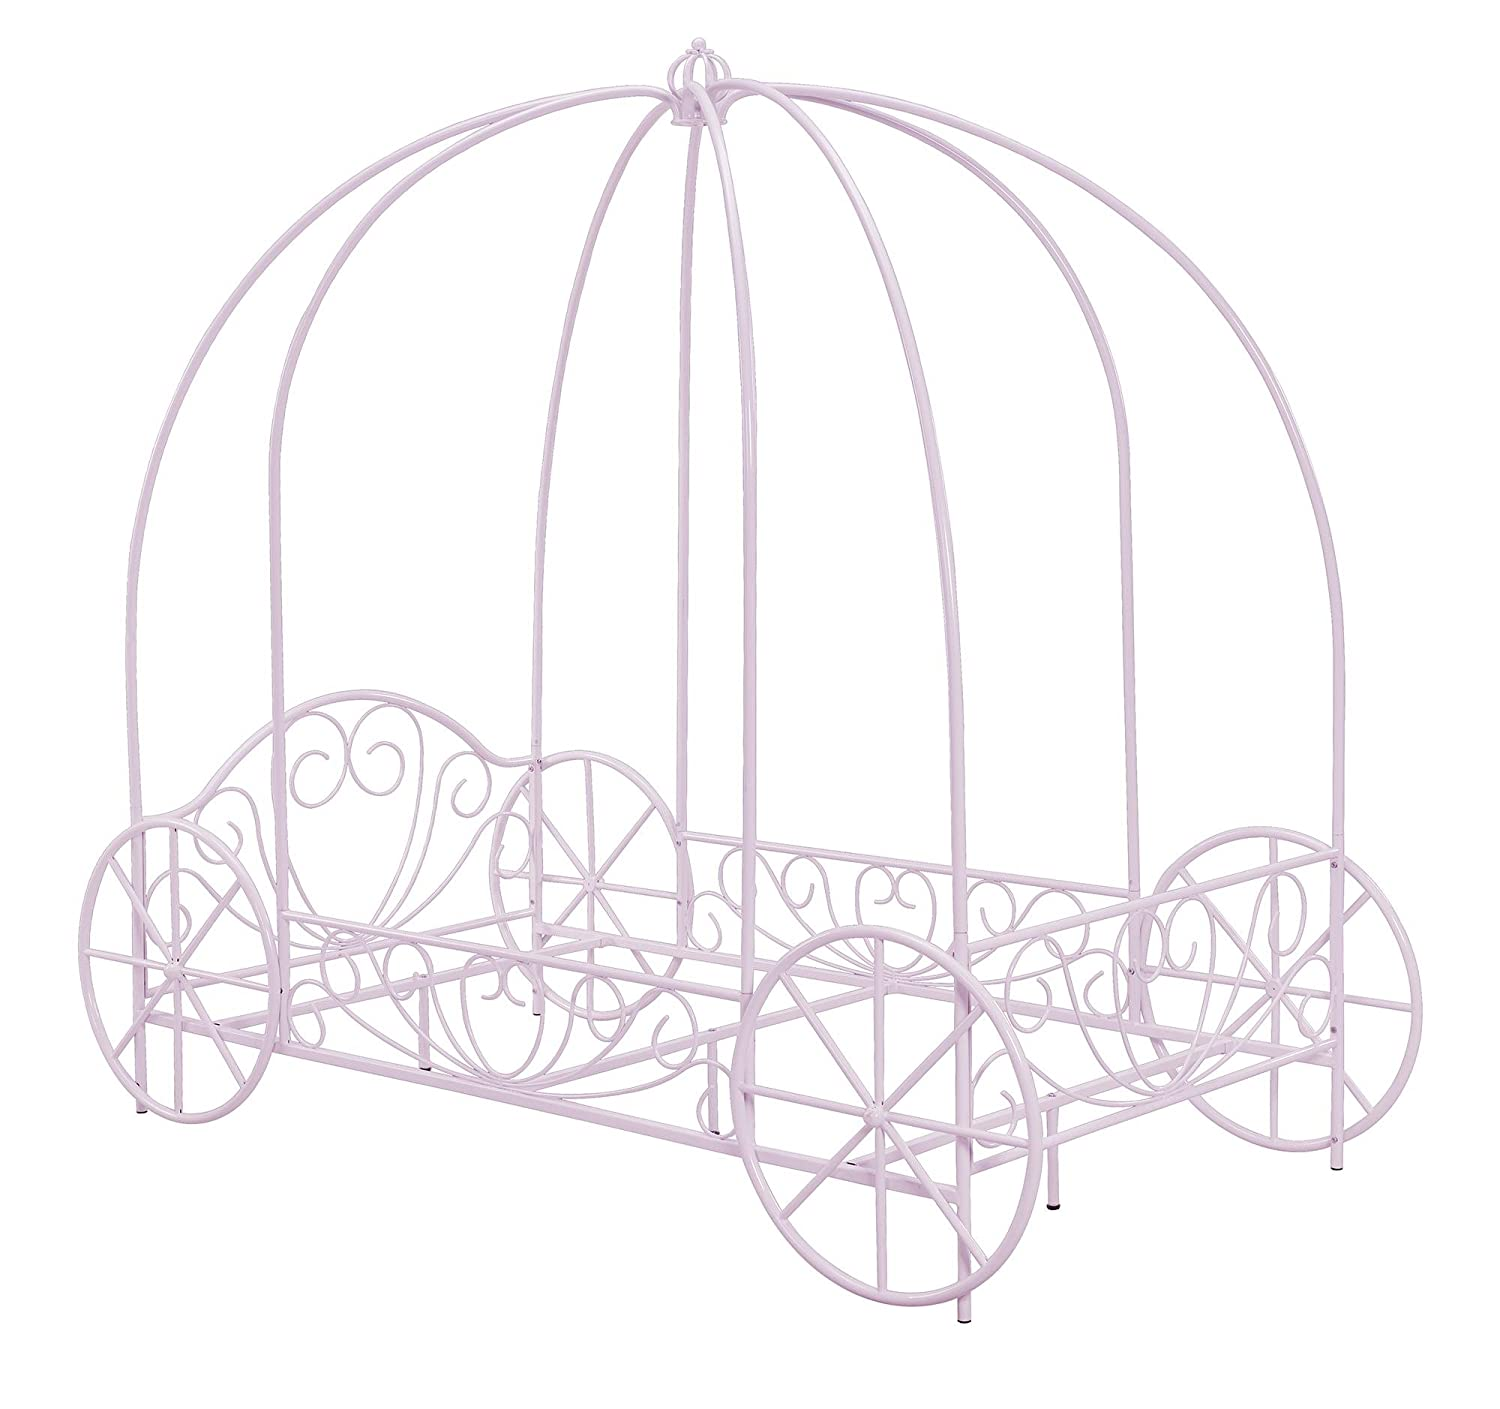 Design Carriage Bed amazon com dhp metal carriage bed fairy tale frame shabby chic style twin lilac kitchen dining